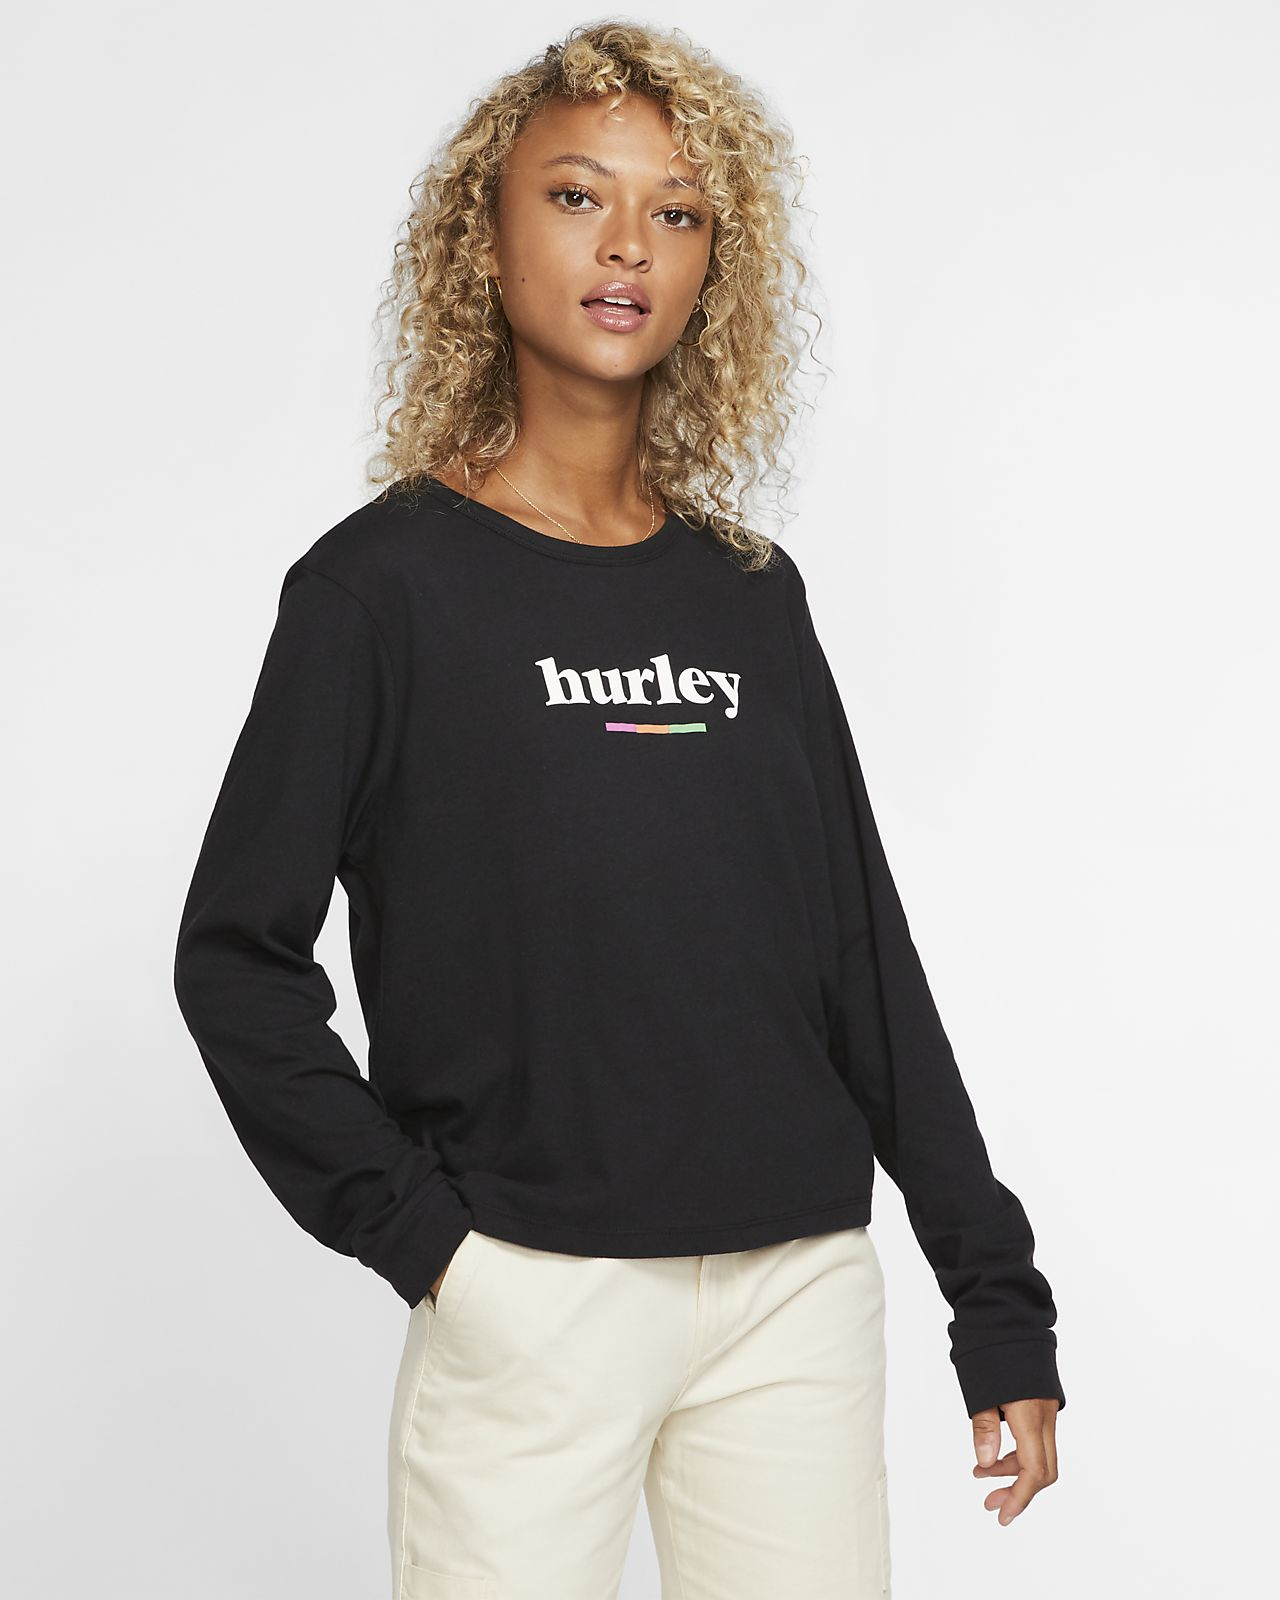 Hurley Pompel Perfect Langarm-T-Shirt für Damen